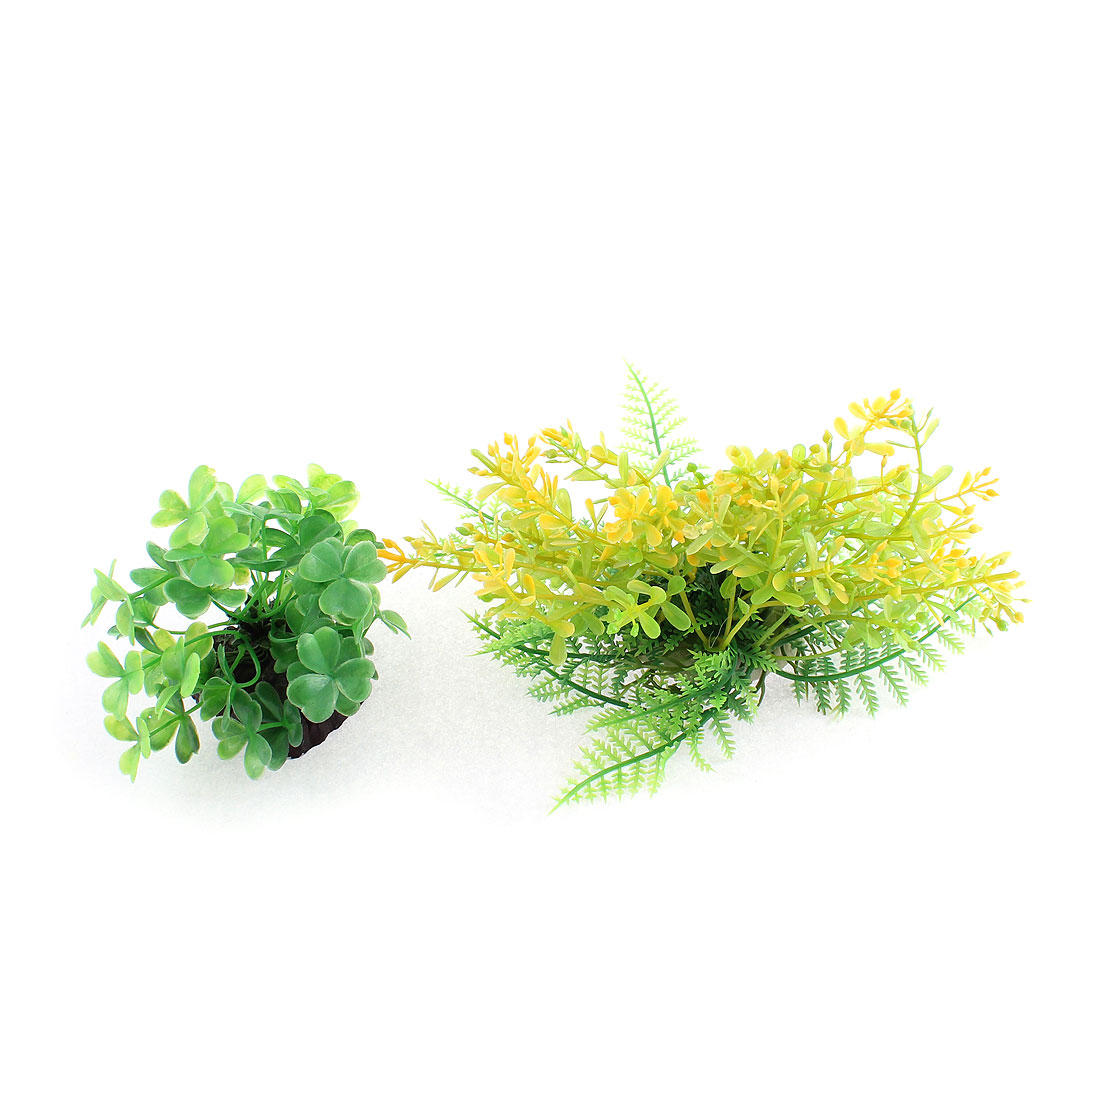 Aquarium Ceramic Base Plastic Simulation Water Plant Grass Decoration 2pcs